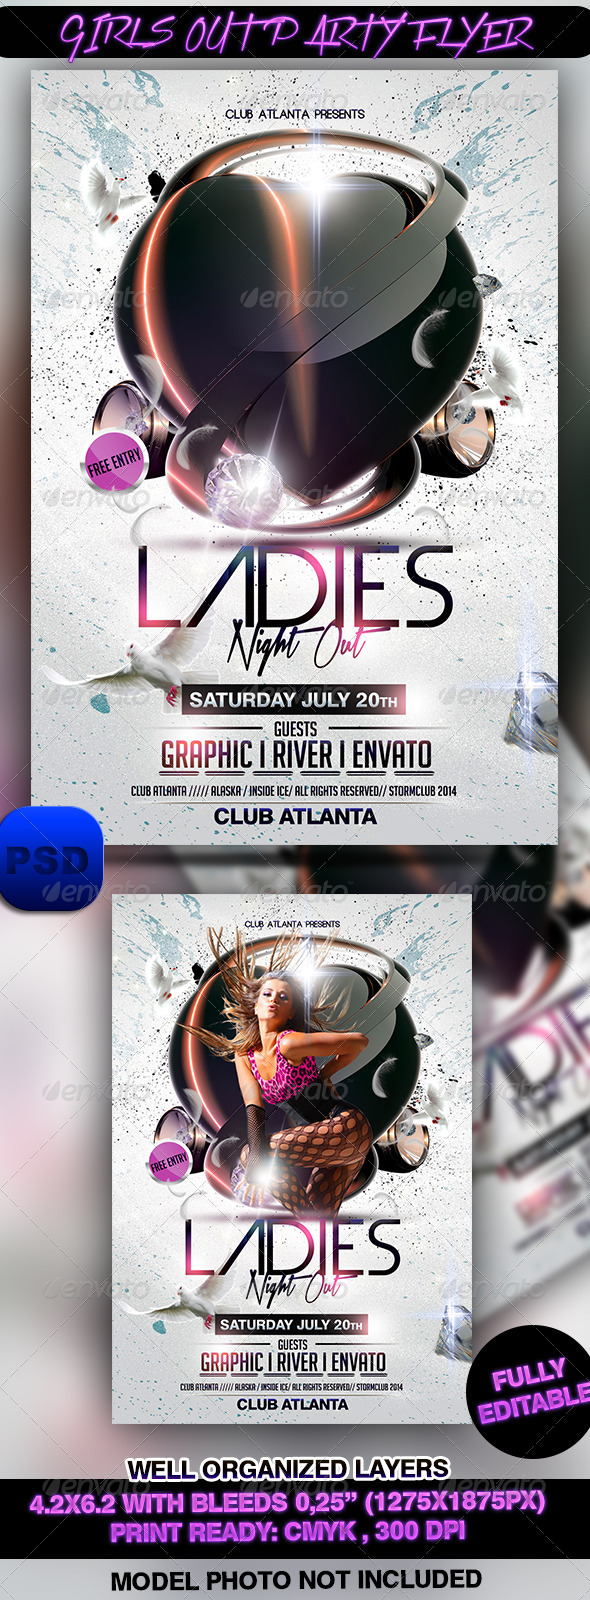 GraphicRiver Girls Out Party Flyer 7329451